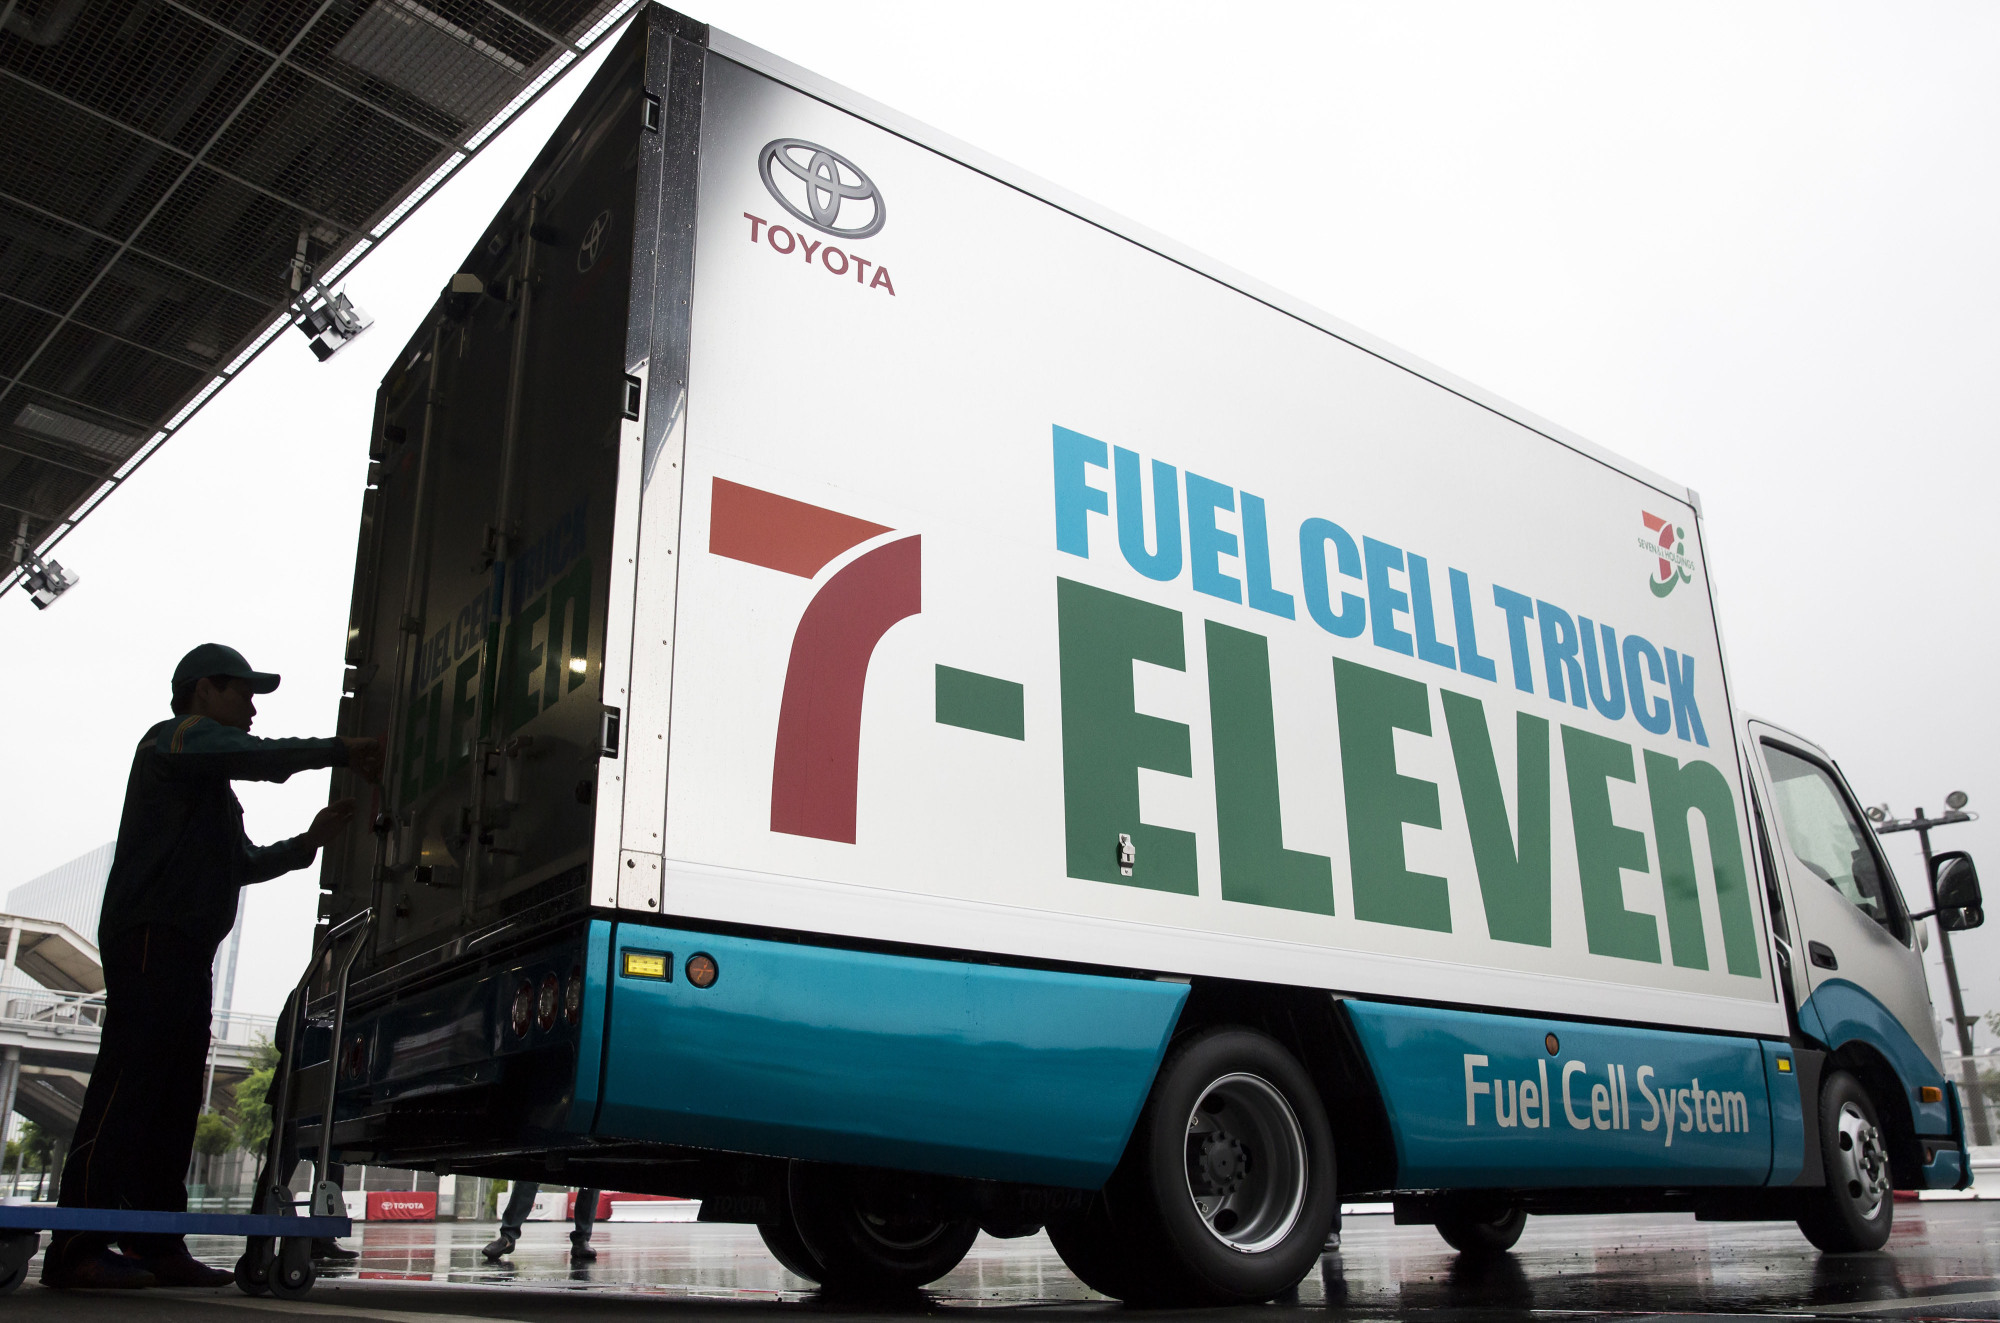 Use Truck Awesome Seven Eleven to Use toyota Fuel Cell Trucks for Deliveries Next Year